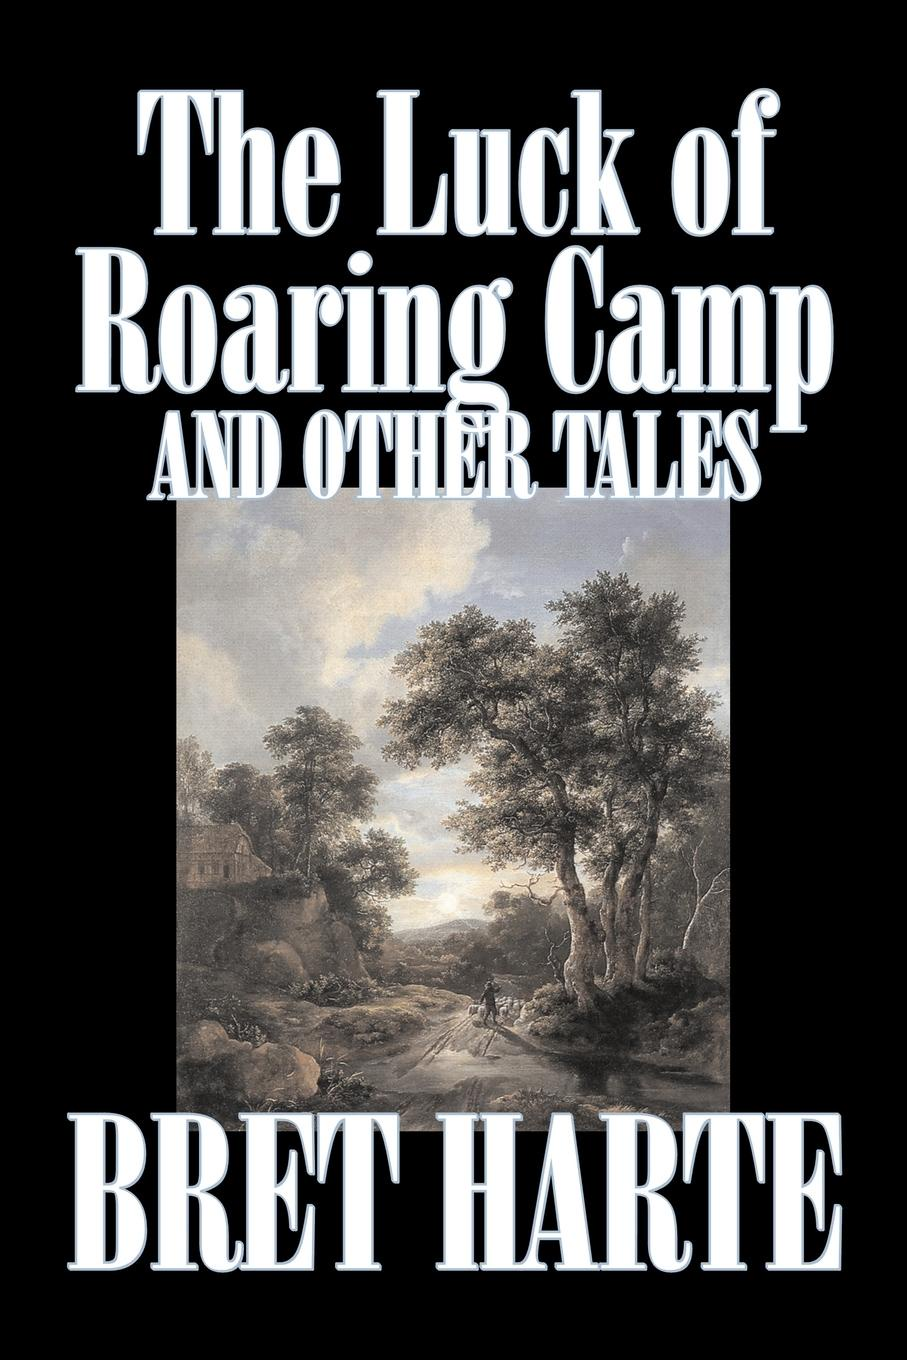 Bret Harte The Luck of Roaring Camp and Other Tales by Bret Harte, Fiction, Westerns, Historical bret harte the luck of roaring camp heathen chinee poems and other sketches